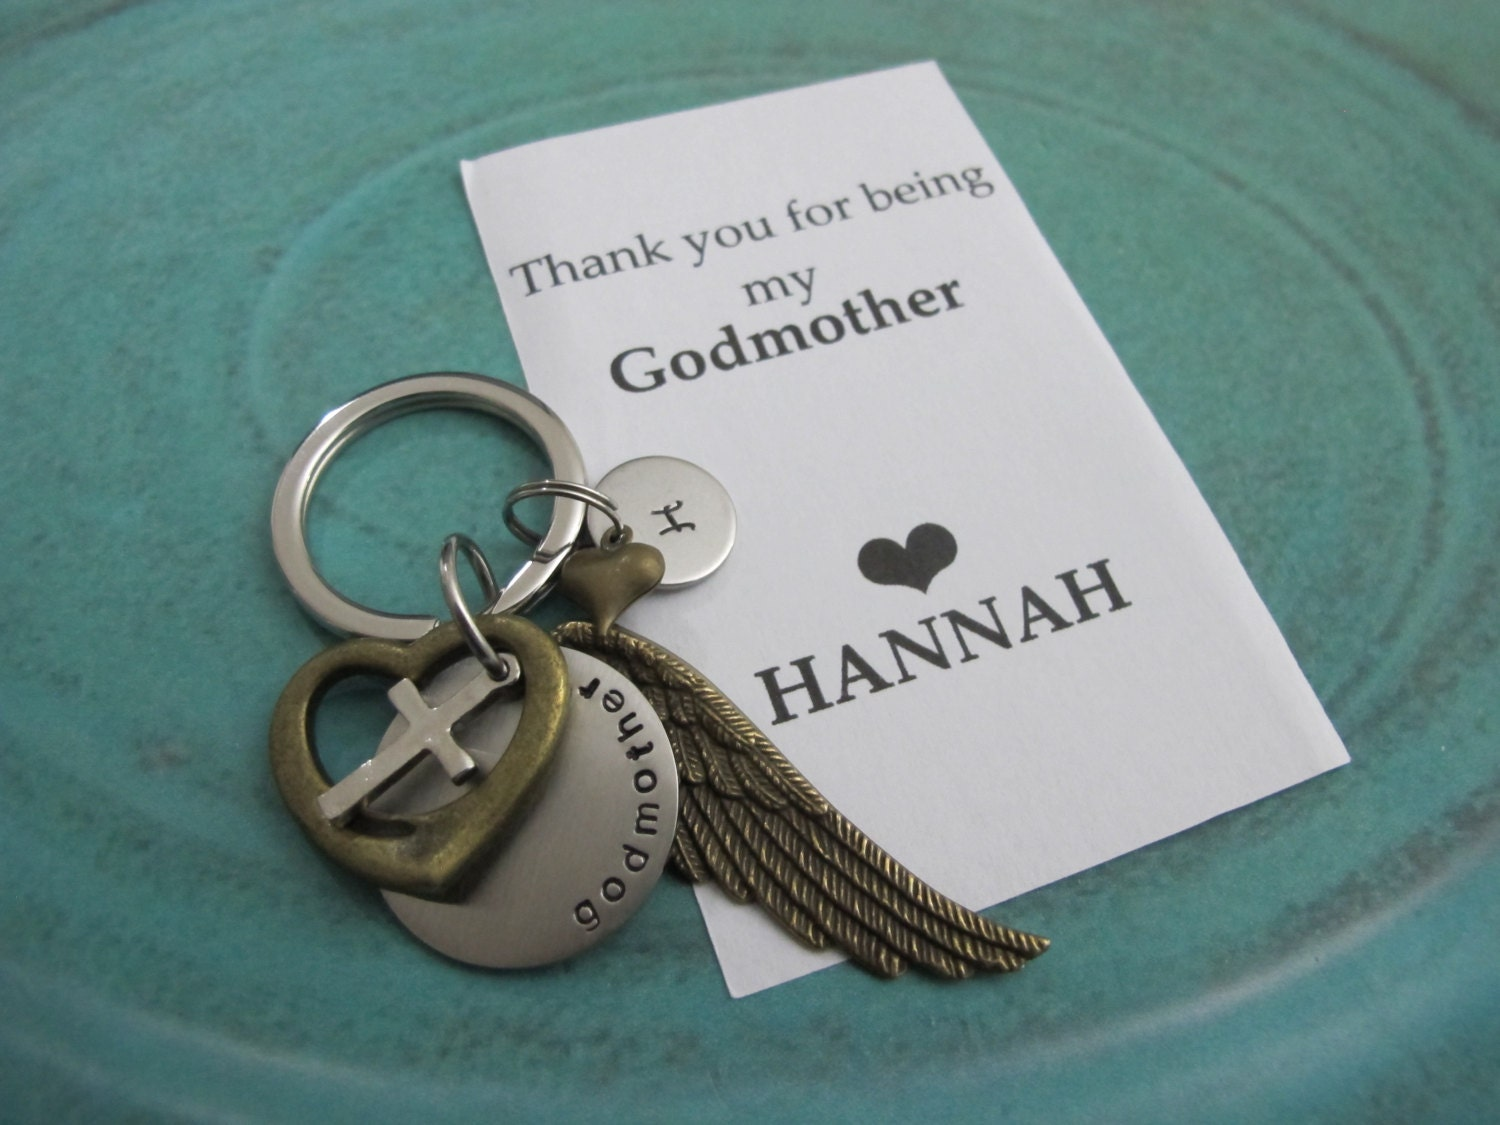 Godmother Gift Godparent Gift Personalized Gift For: Godmother Gift Personalized Initial Keychain Godparent